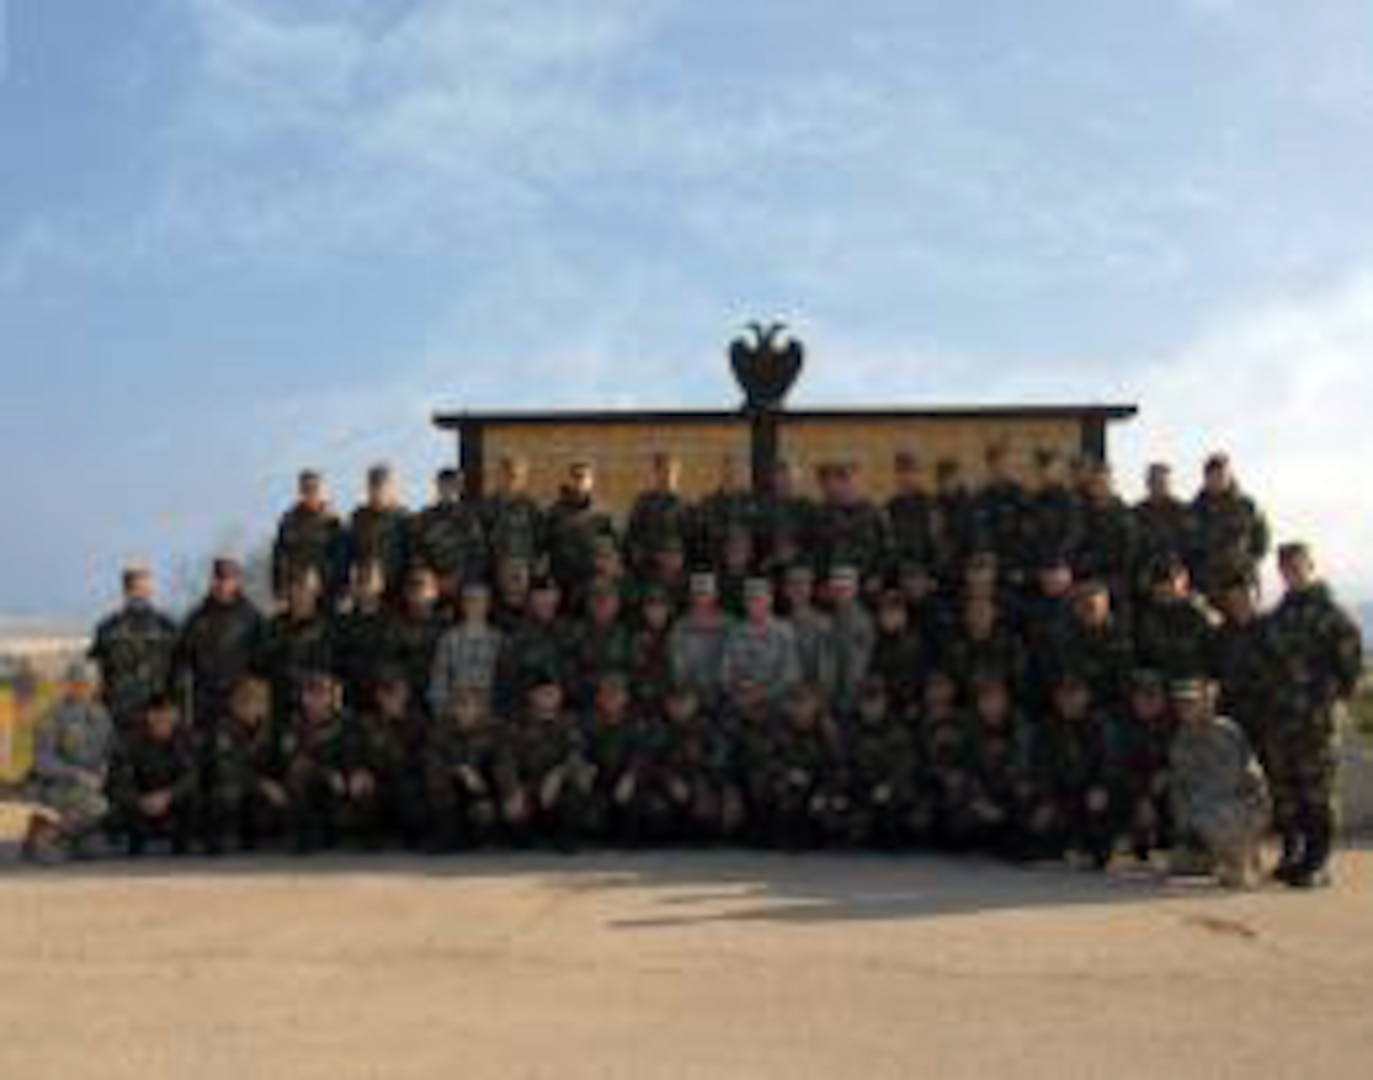 The initial Senior Noncommissioned Officer course for the Kosovo Security Forces was taught by Iowa National Guard members as part of the National Guard State Partnership Program. They are stationed as part of the NATO-led Kosovo Forces 14 rotation, and KSF personnel. The Iowa National Guard assumed State Partnership status with Kosovo March 2011.